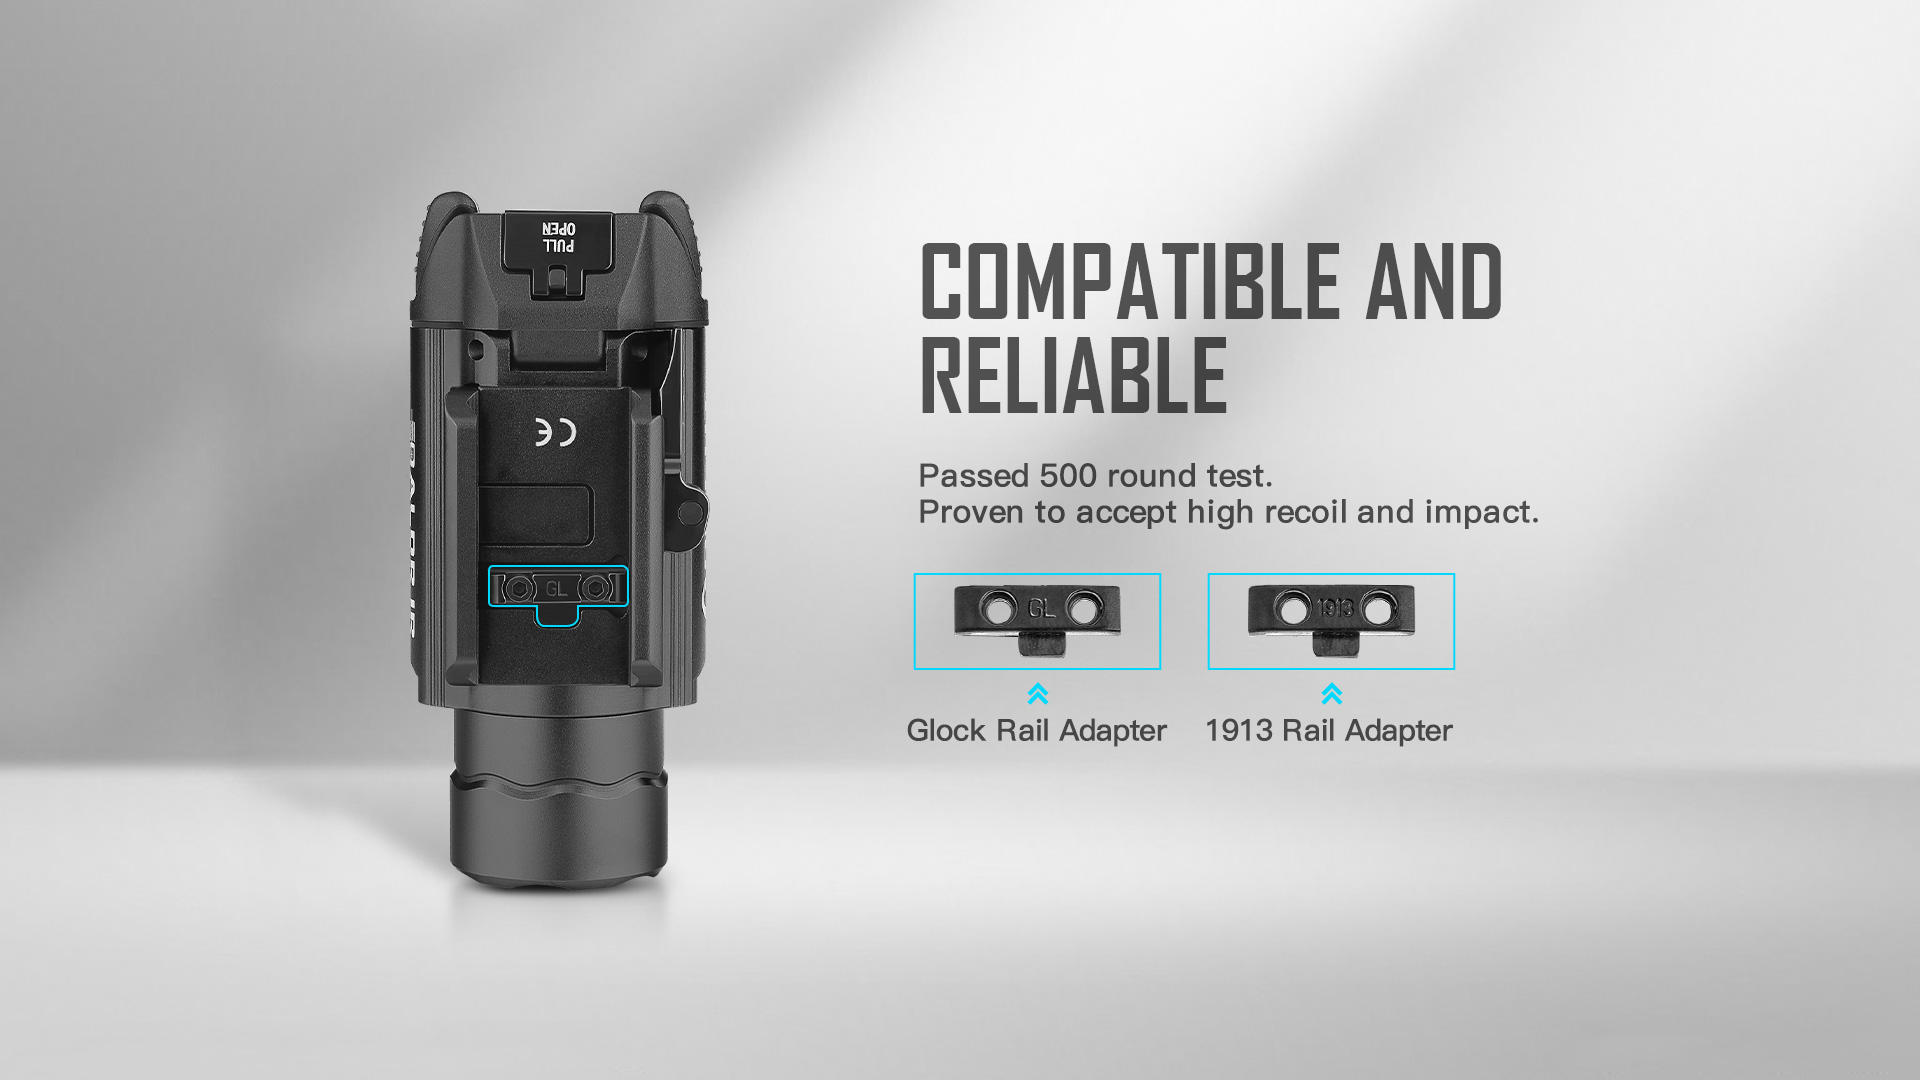 Compatible and reliable Baldr IR